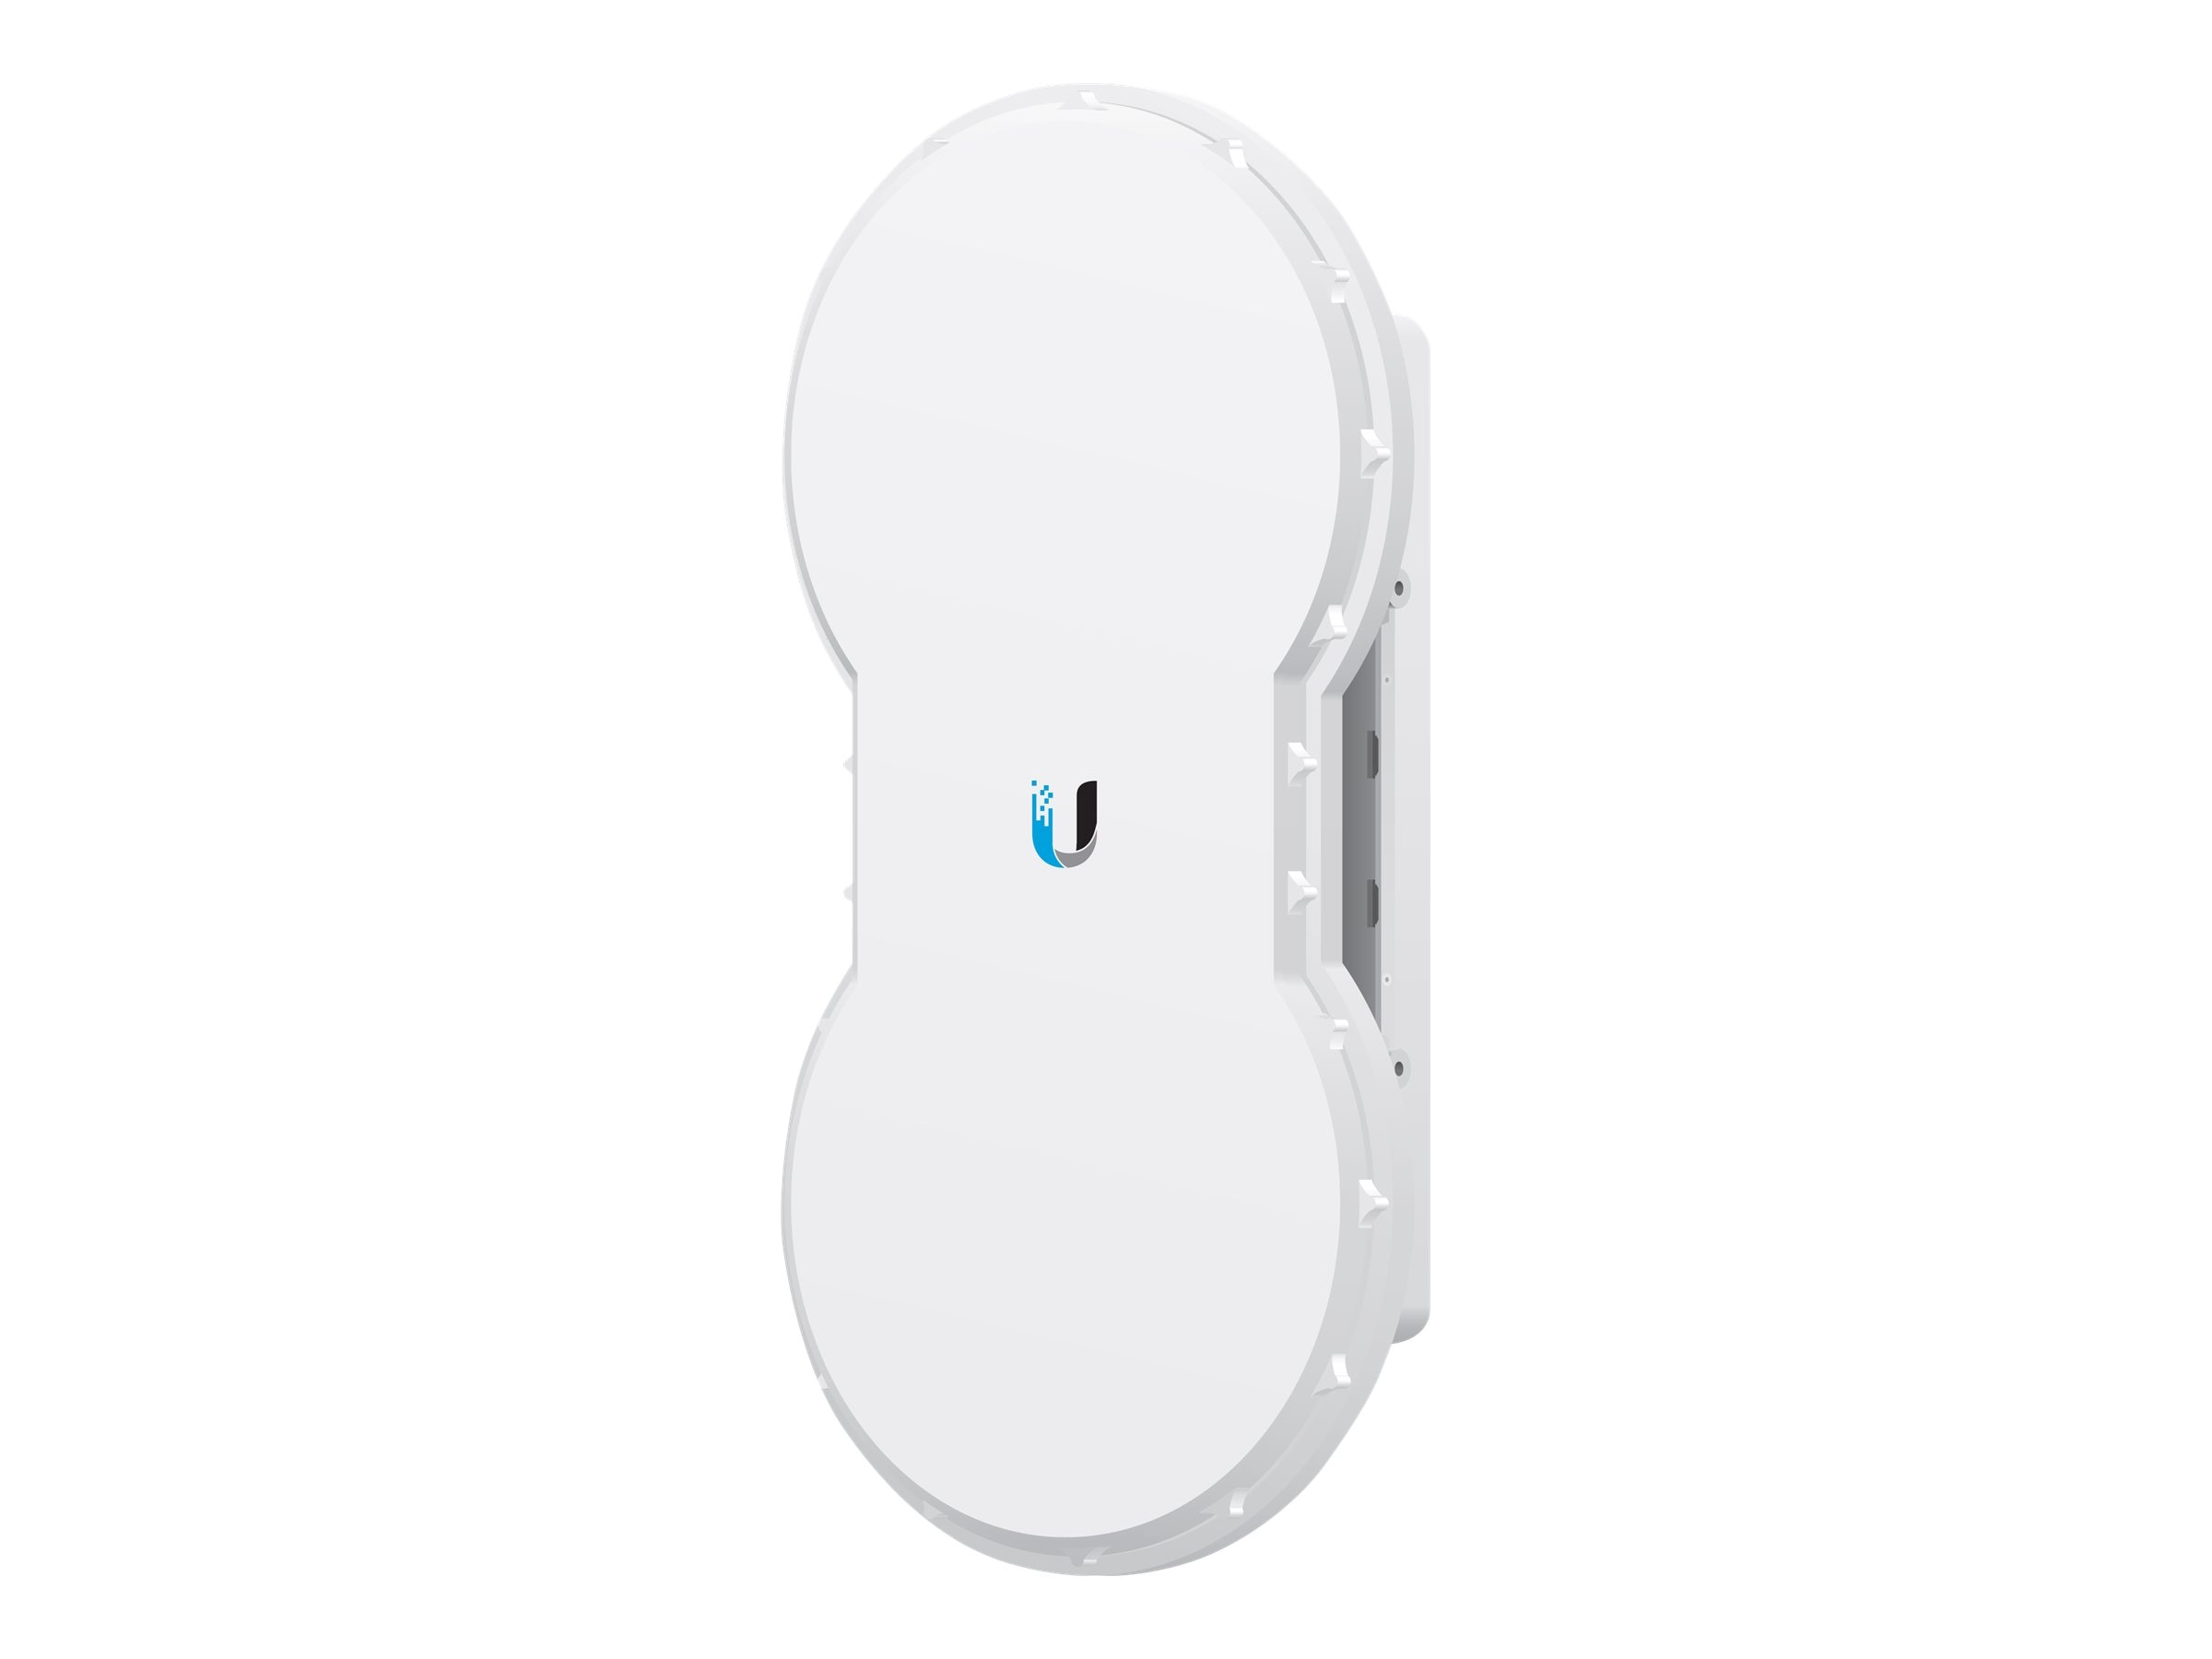 Ubiquiti airFiber 5GHz Wireless Bridge